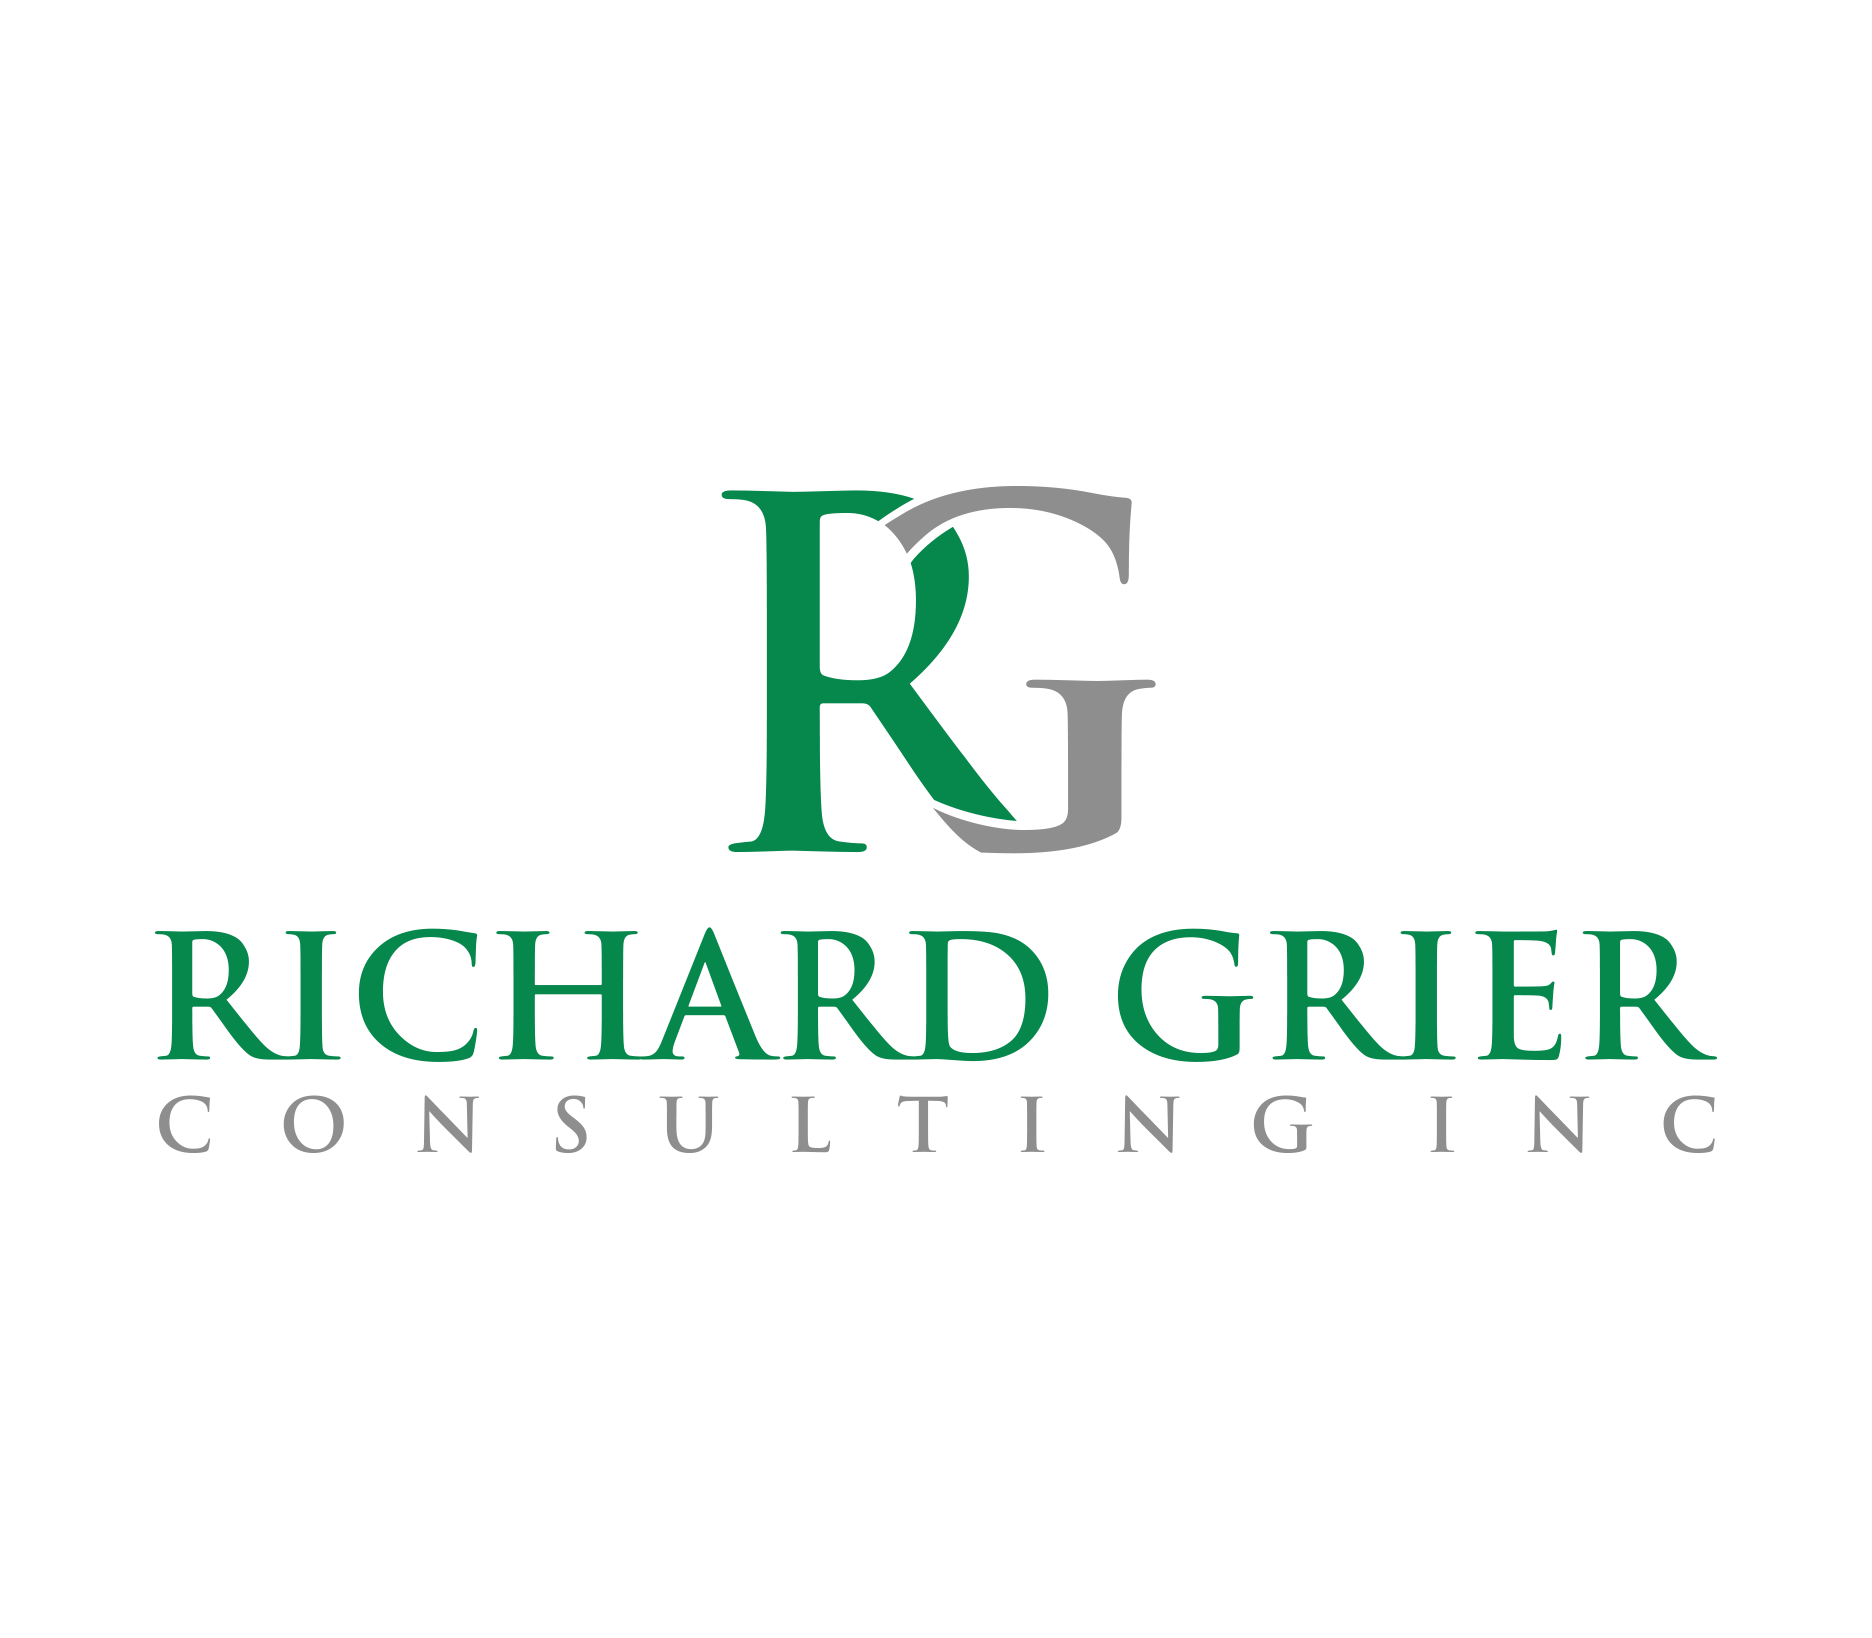 Richard Grier Consulting Inc